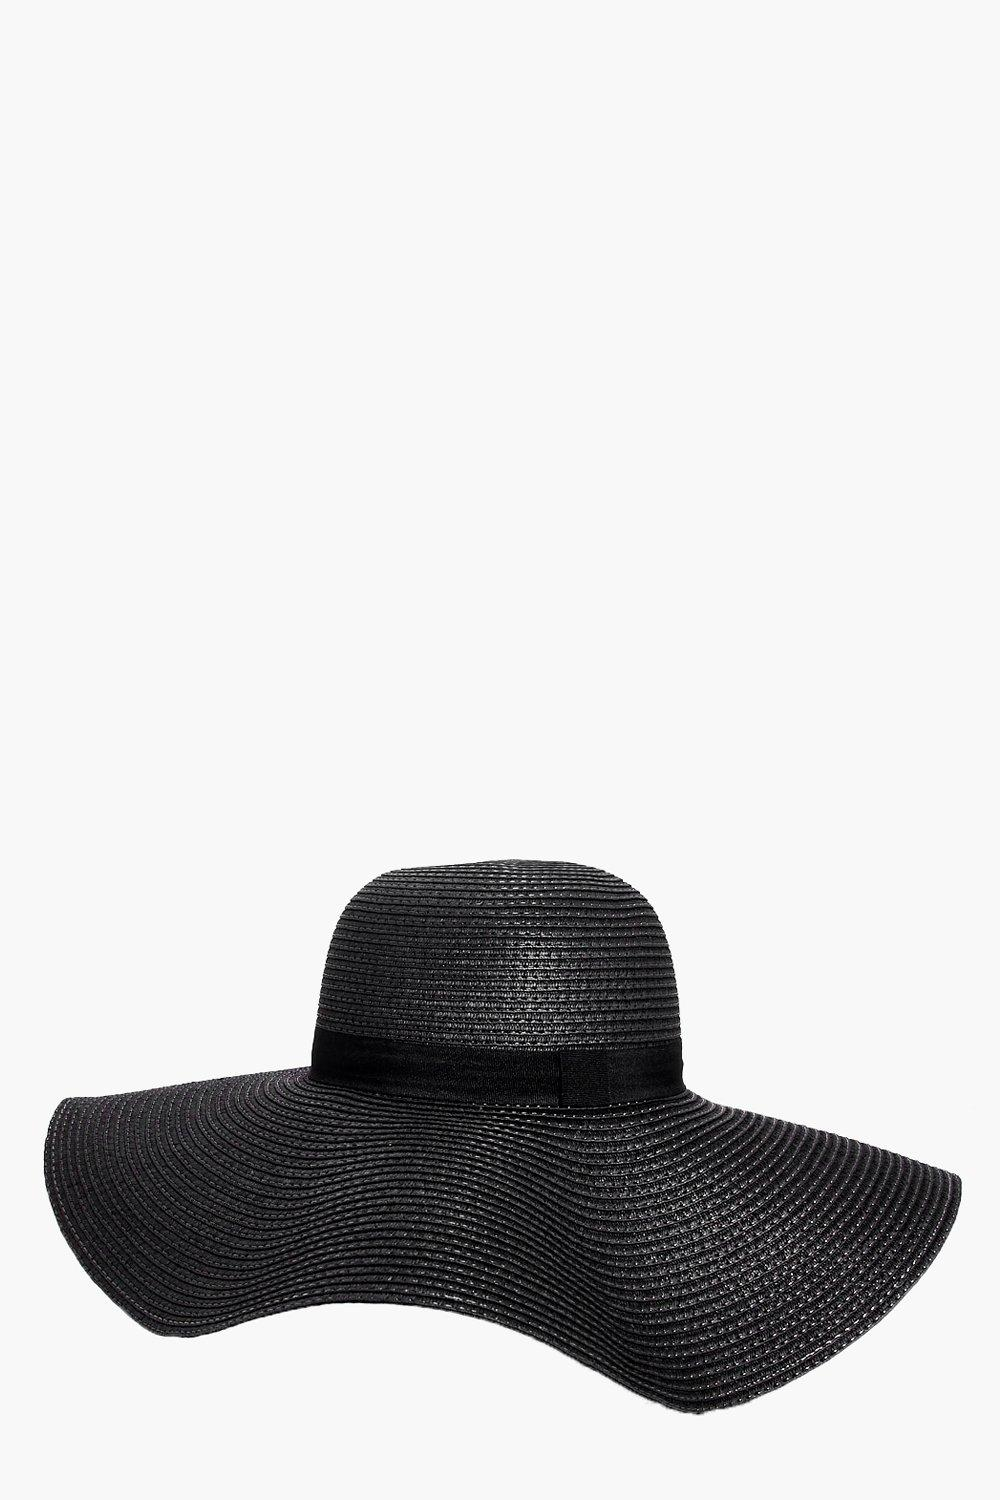 Straw Floppy Hat - black - Alice Straw Floppy Hat